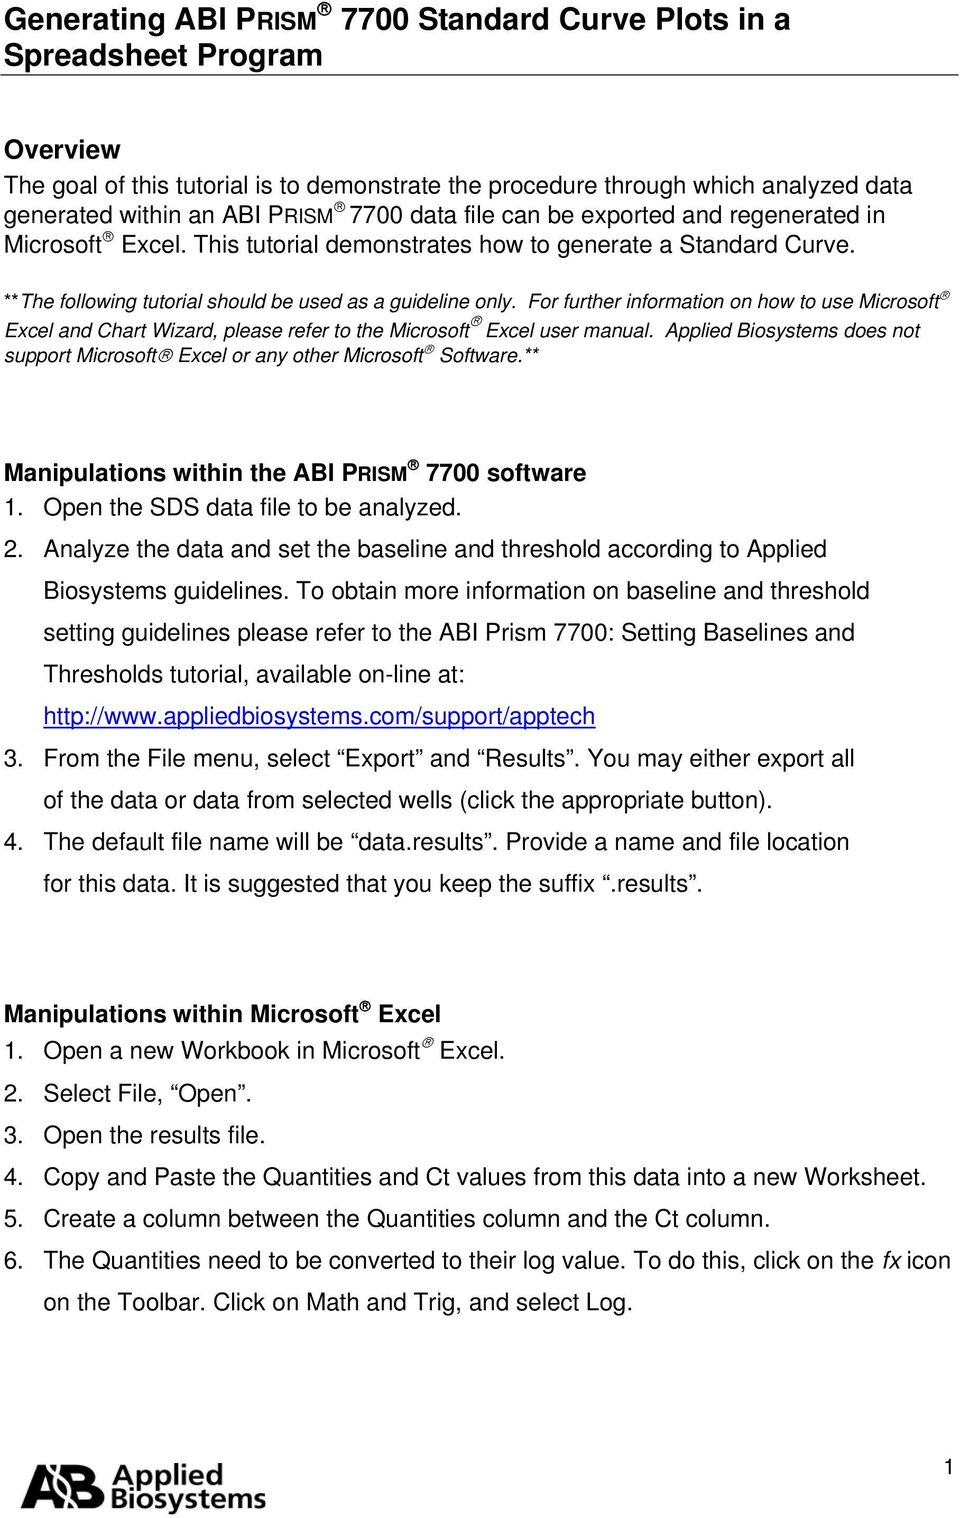 For further information on how to use Microsoft Excel and Chart Wizard, please refer to the Microsoft Excel user manual.